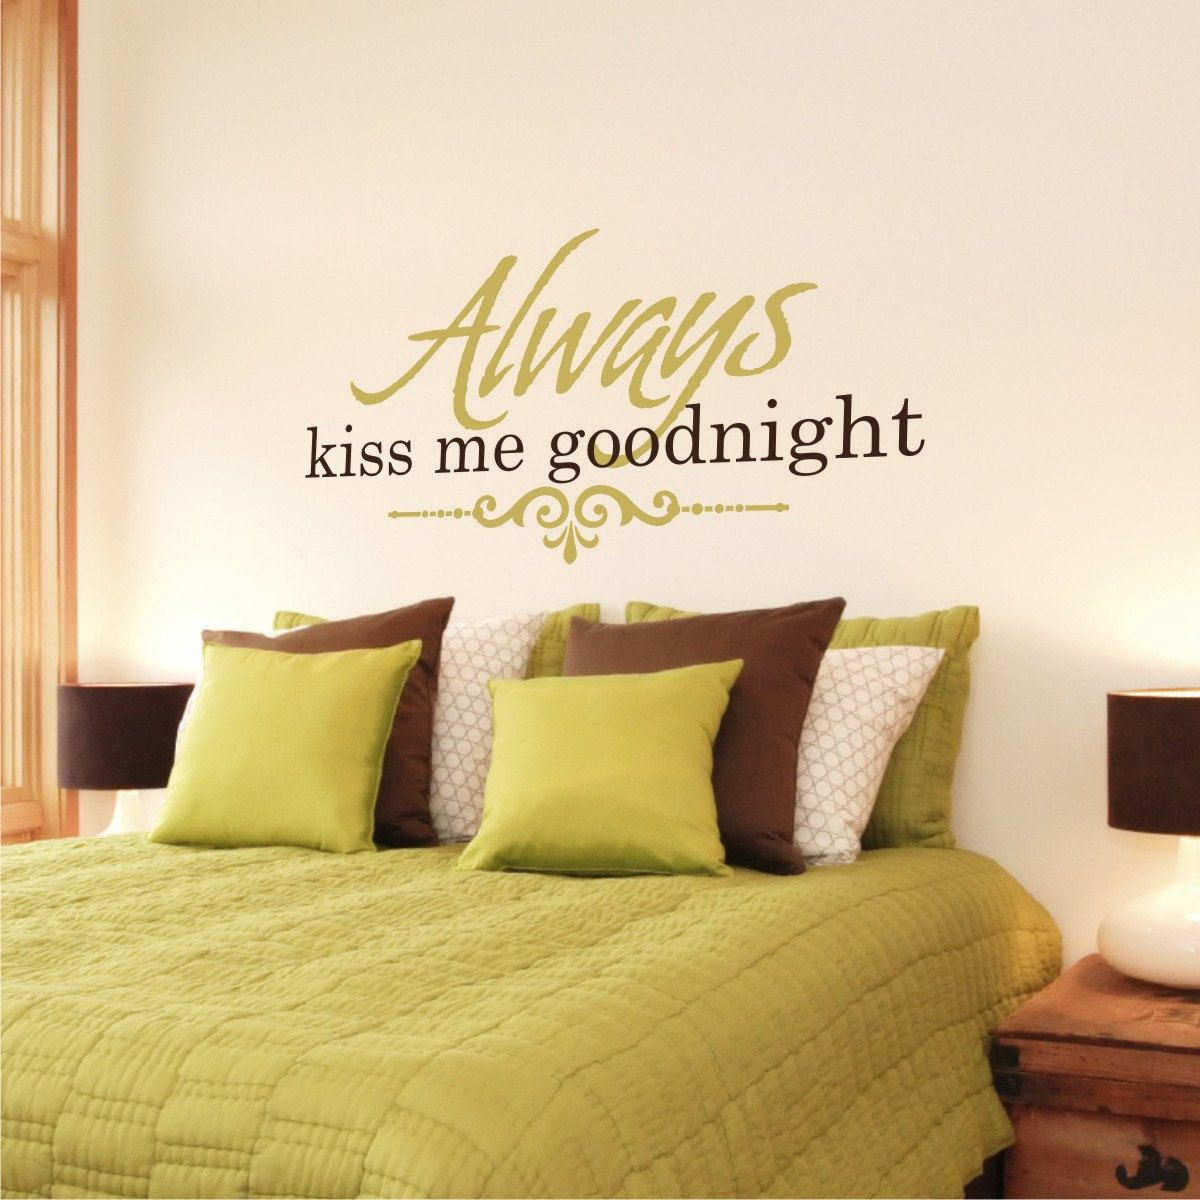 Always kiss me goodnight silhouette projects pinterest vinyls